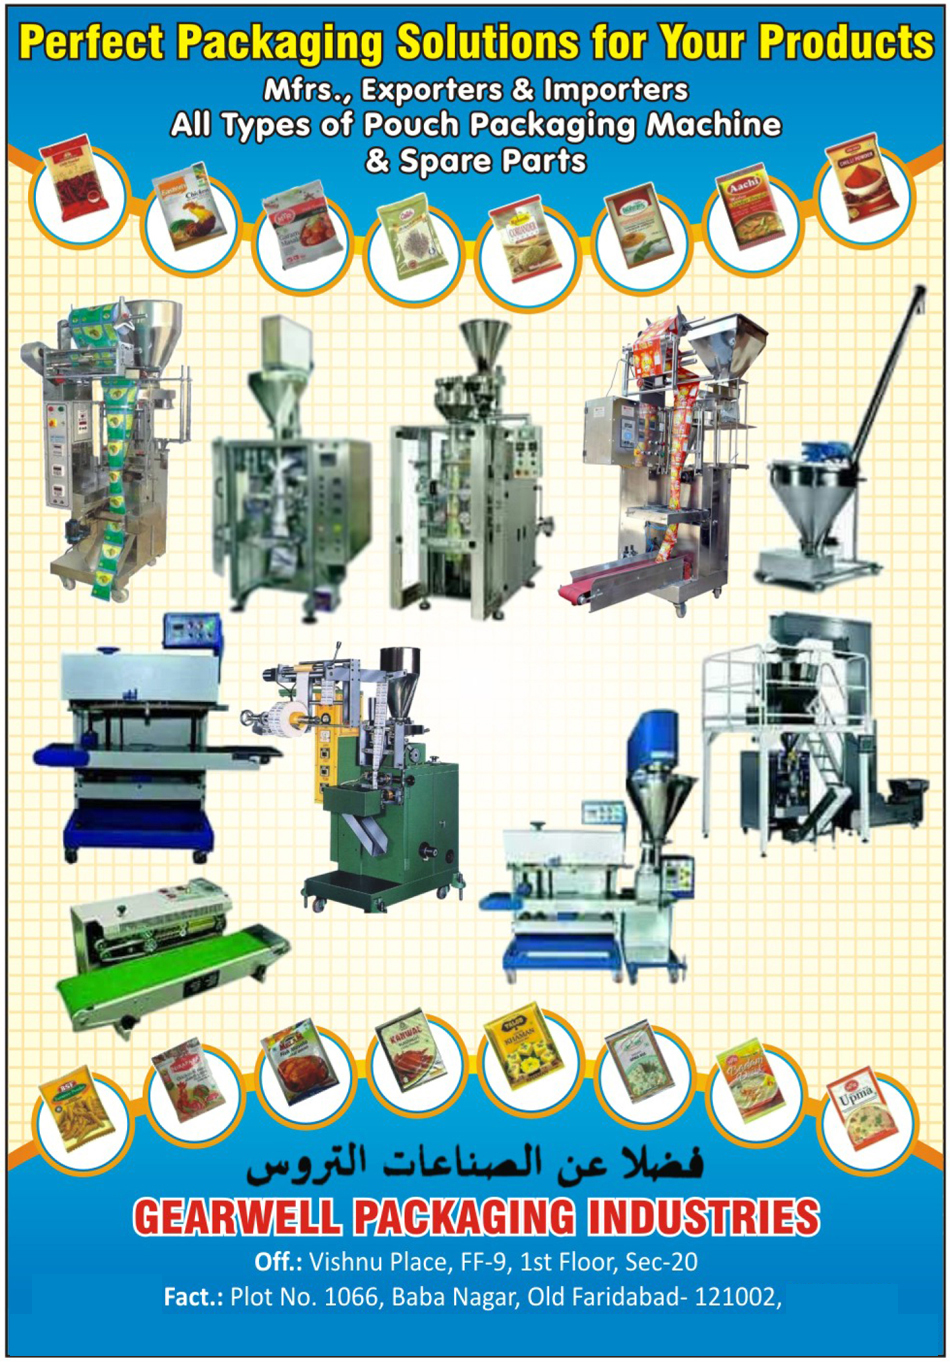 Pouch Packaging Machines, Pouch Packaging Machine Spare Parts, Arabic Language Packaging Materials